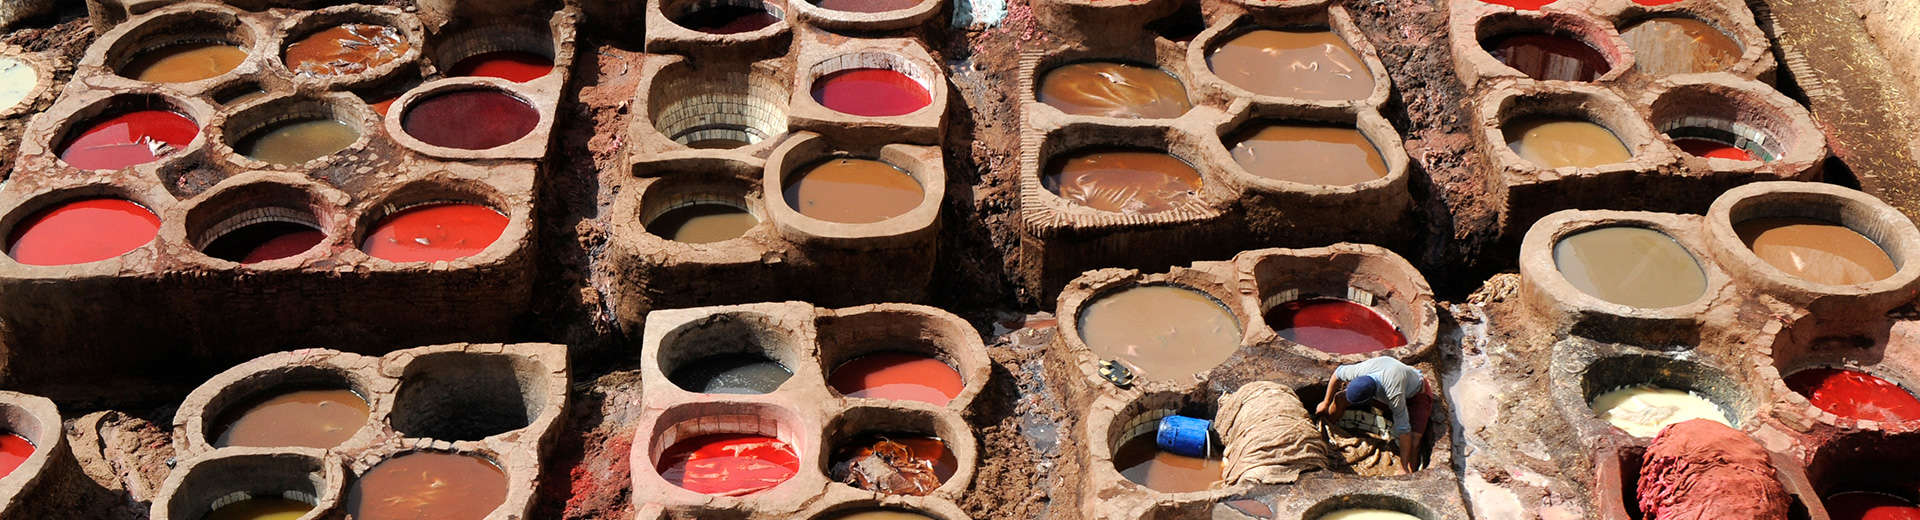 fez tannerie morocco